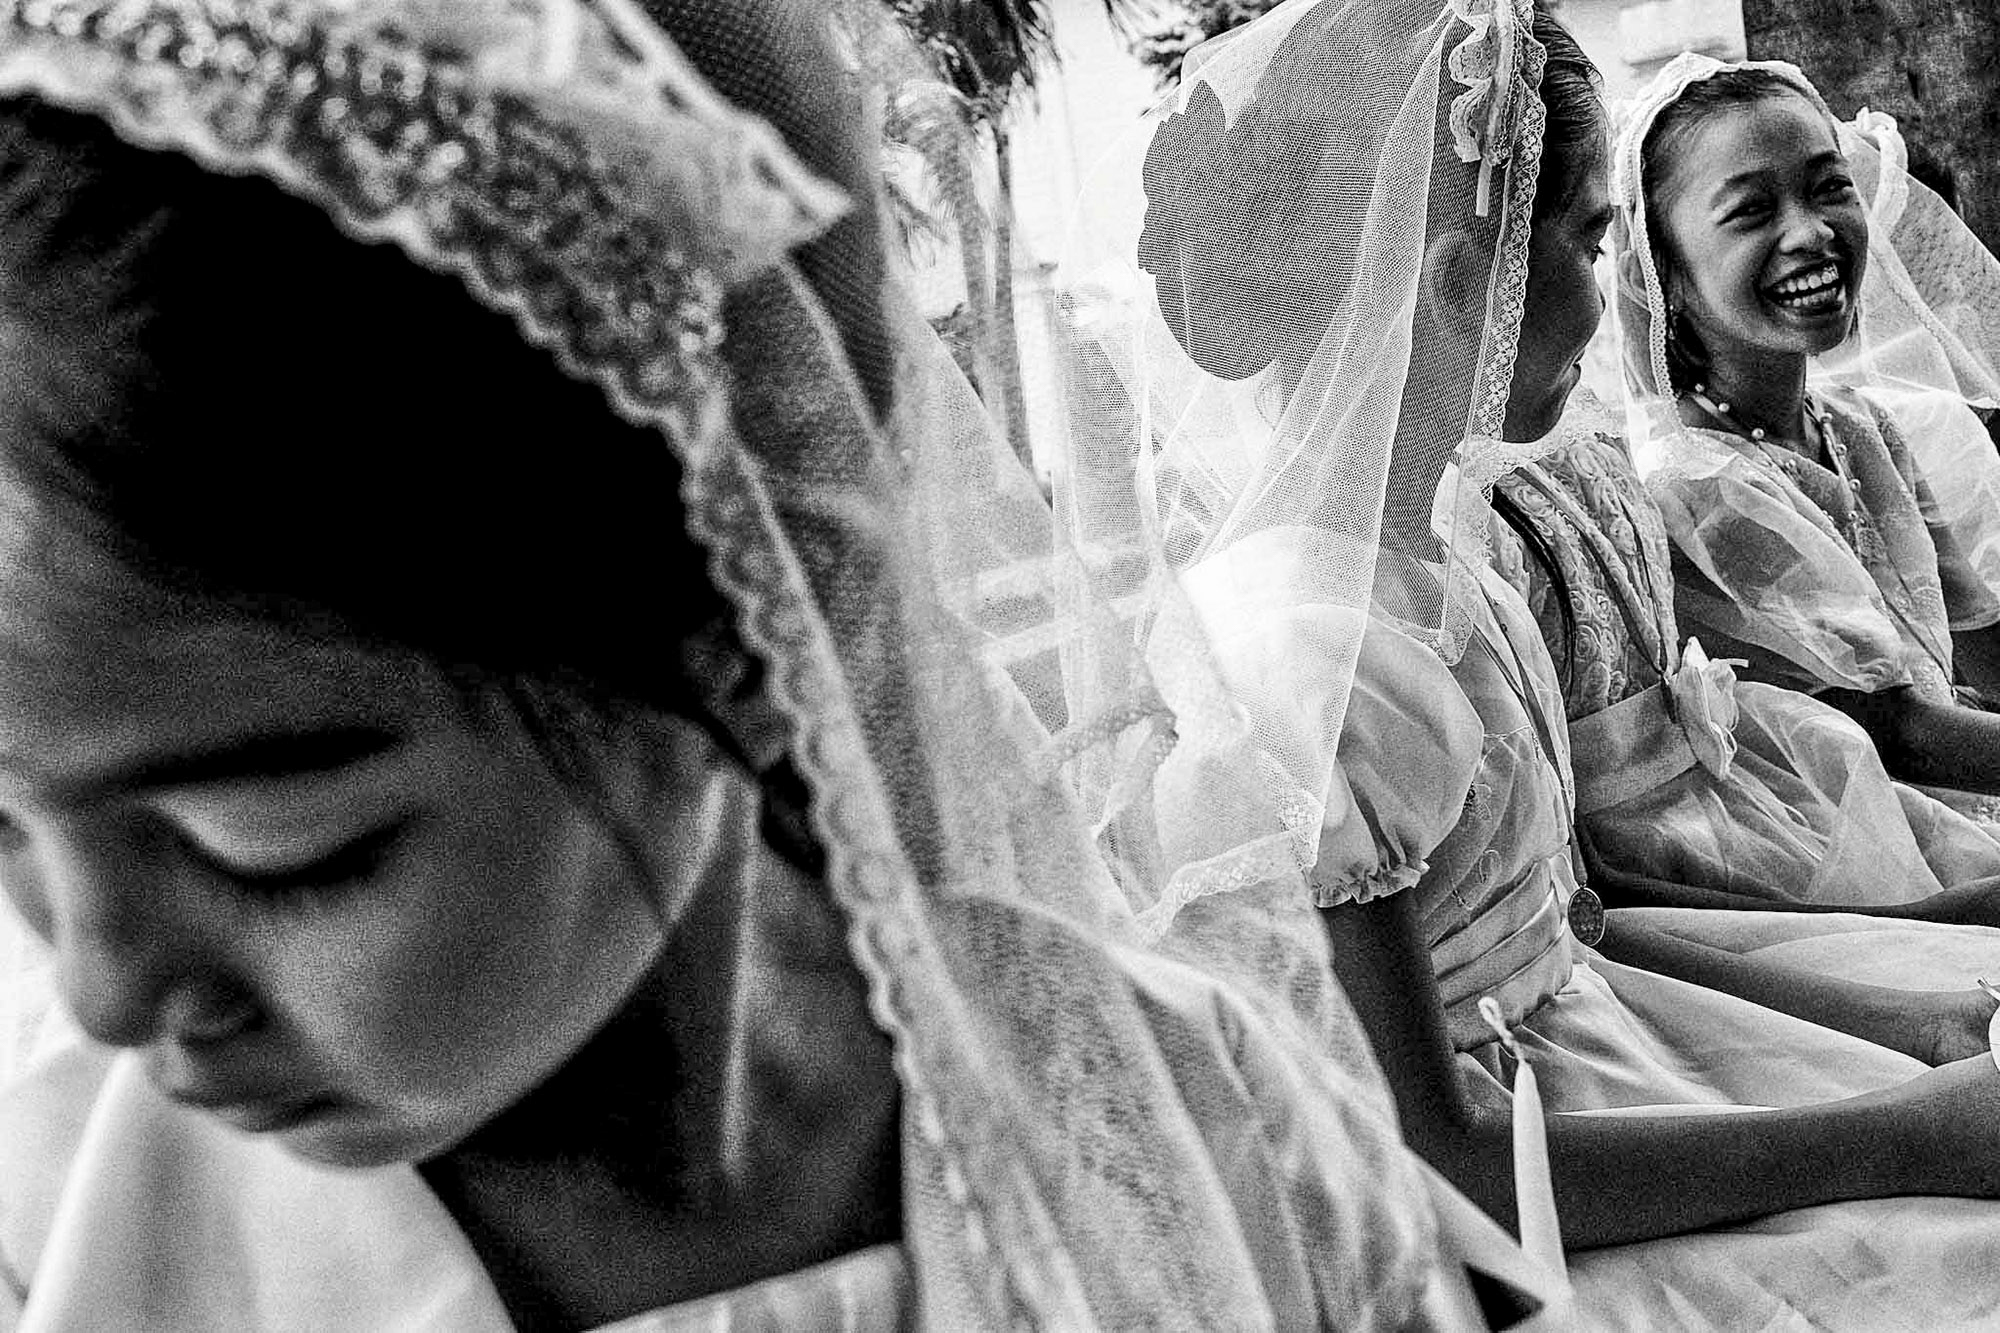 Catholic school girls await their first communion rights months after Typhoon Haiyan, the strongest typhoon ever recorded, wreaked havoc in the greater region of the central Philippines. © Veejay Villafranca